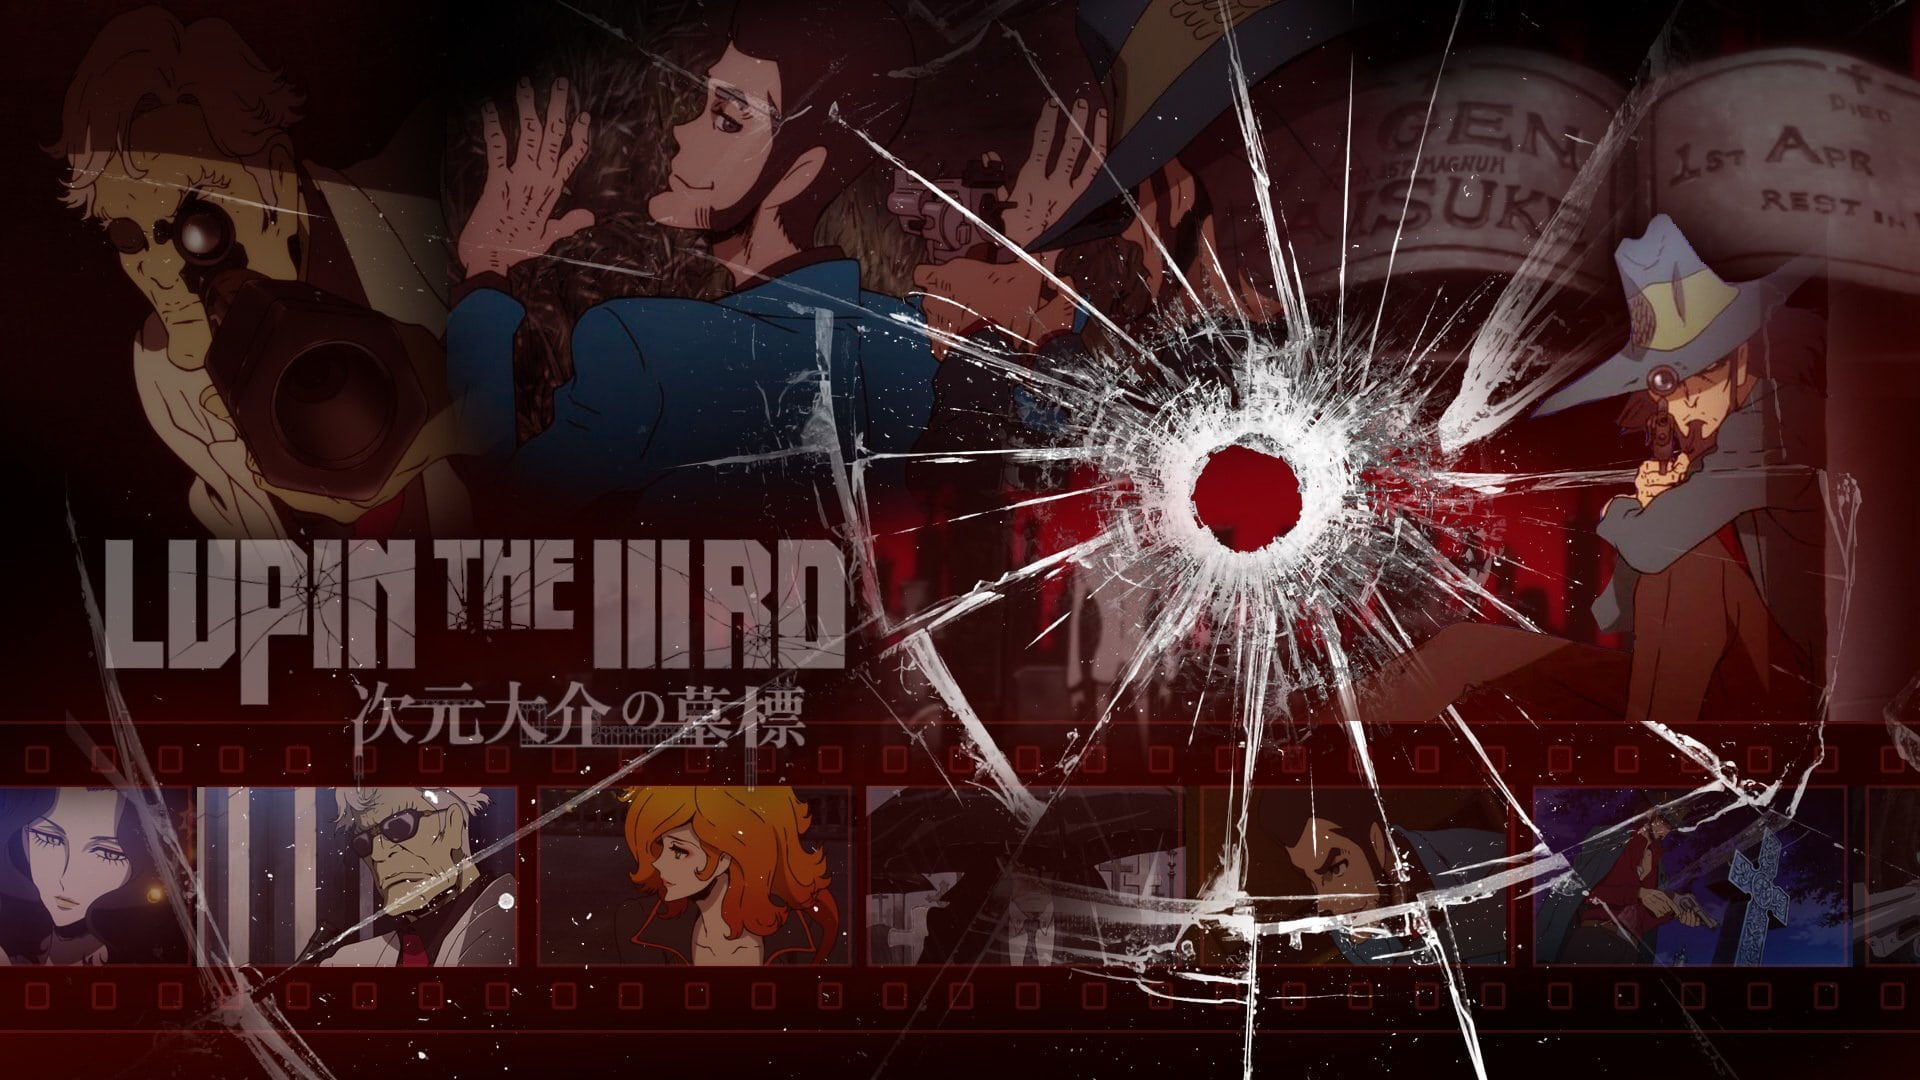 Regarder Lupin the IIIrd : Jigen Daisuke no Bohyou en streaming gratuit